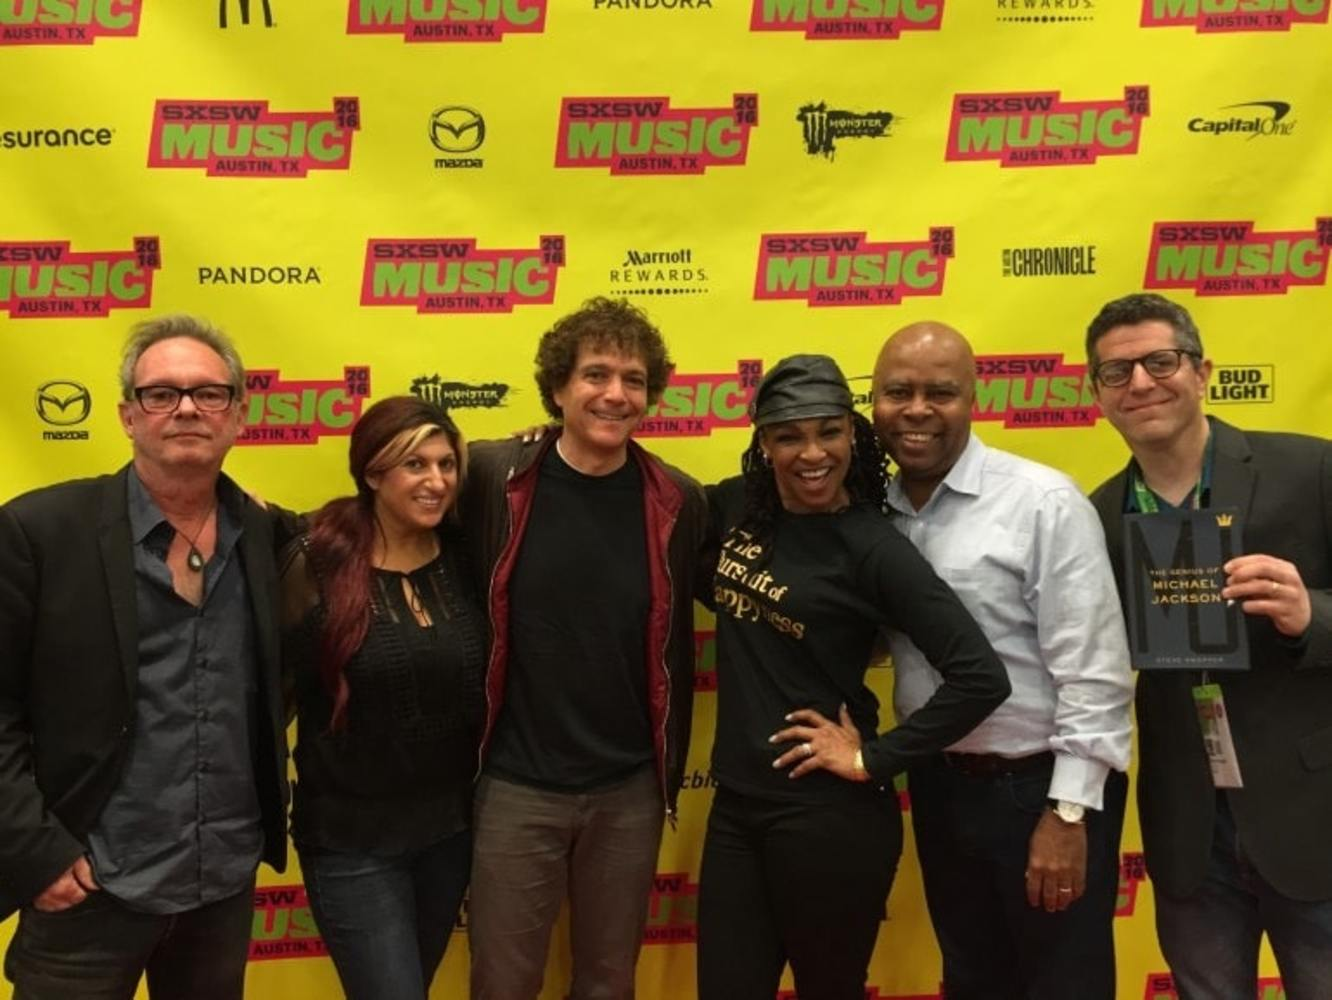 "(L-R) ""The Genius of Michael Jackson"" panel held during the SXSW film festival: Anne Cecere (BMI), Anthony Marinelli, Bill Botrell, Saida Garrett, Steven Ray, Steve Knopper Austin, TX, 2016"